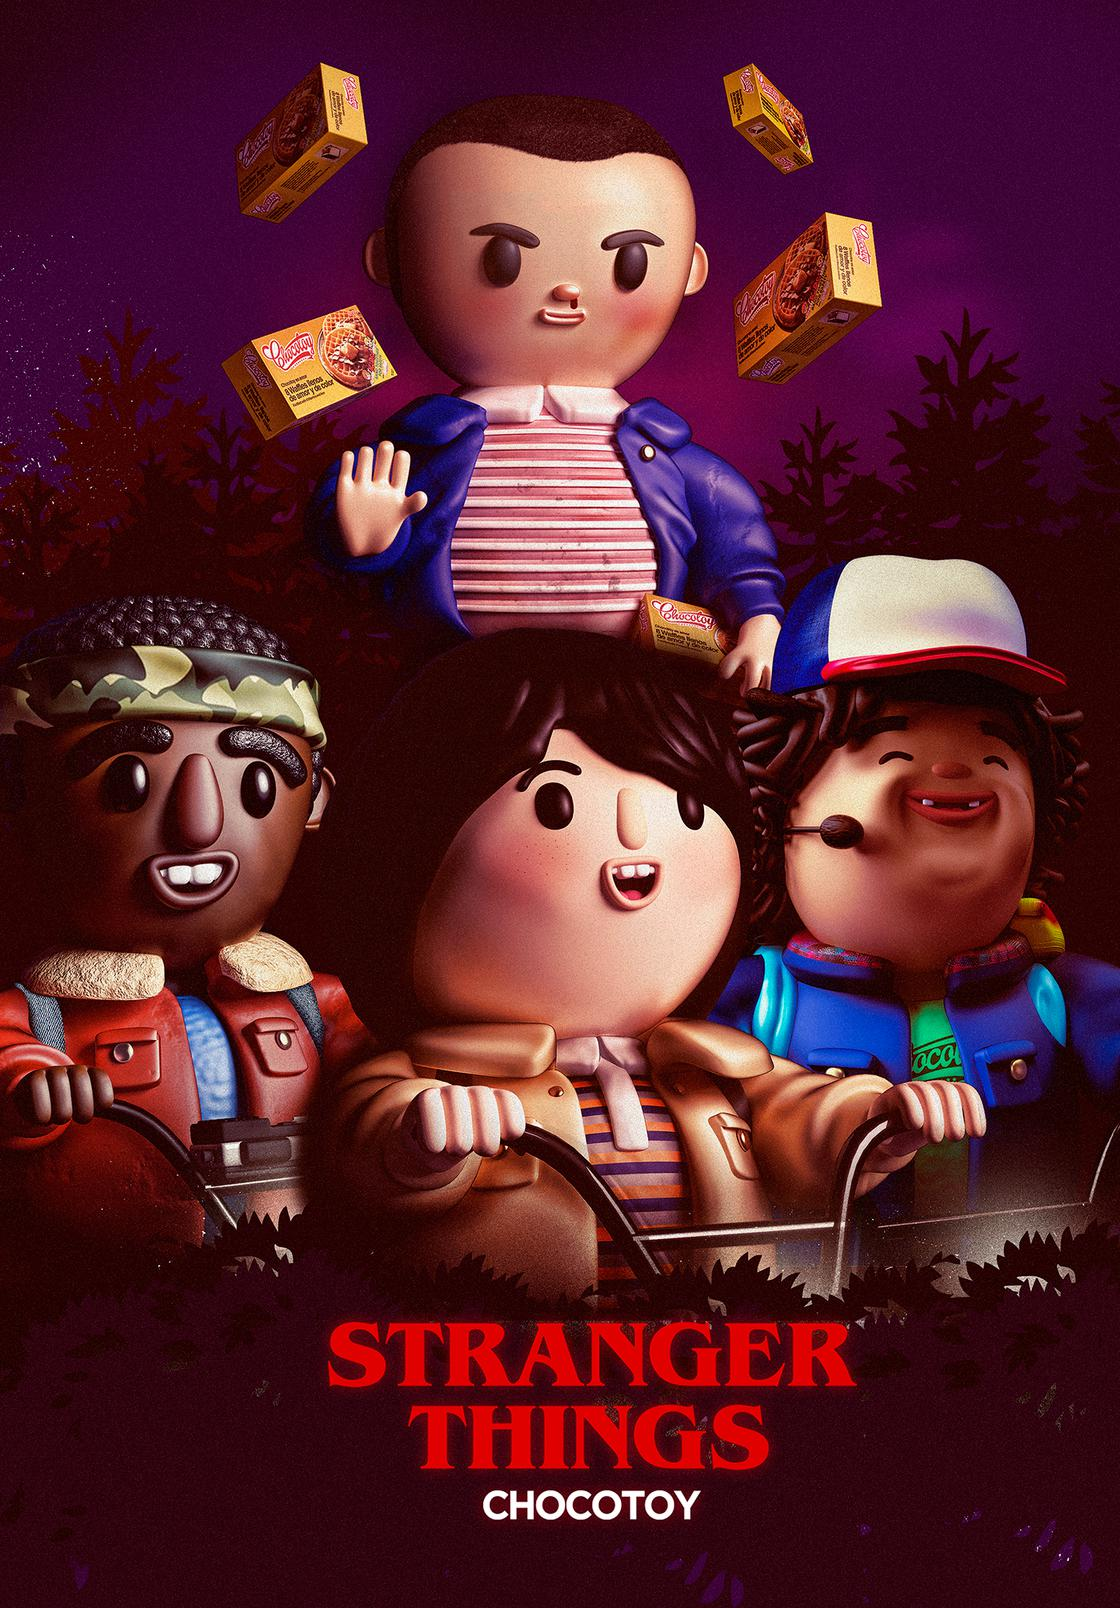 Stranger Toys – The characters of Stranger Things as adorable figurines